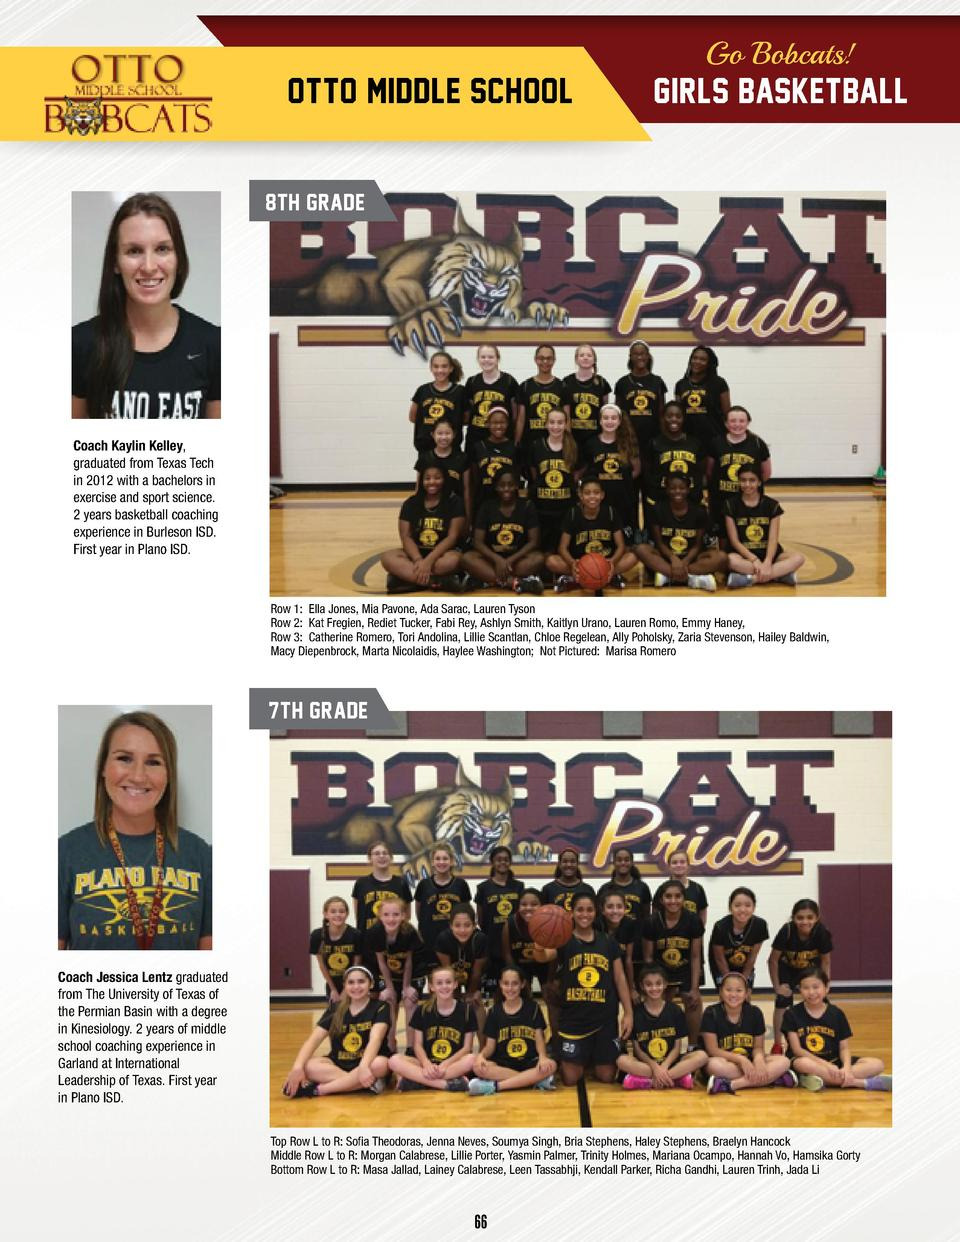 Go Bobcats   OTTO MIDDLE SCHOOL  GIRLS BASKETBALL  8TH GRADE  Coach Kaylin Kelley, graduated from Texas Tech in 2012 with ...